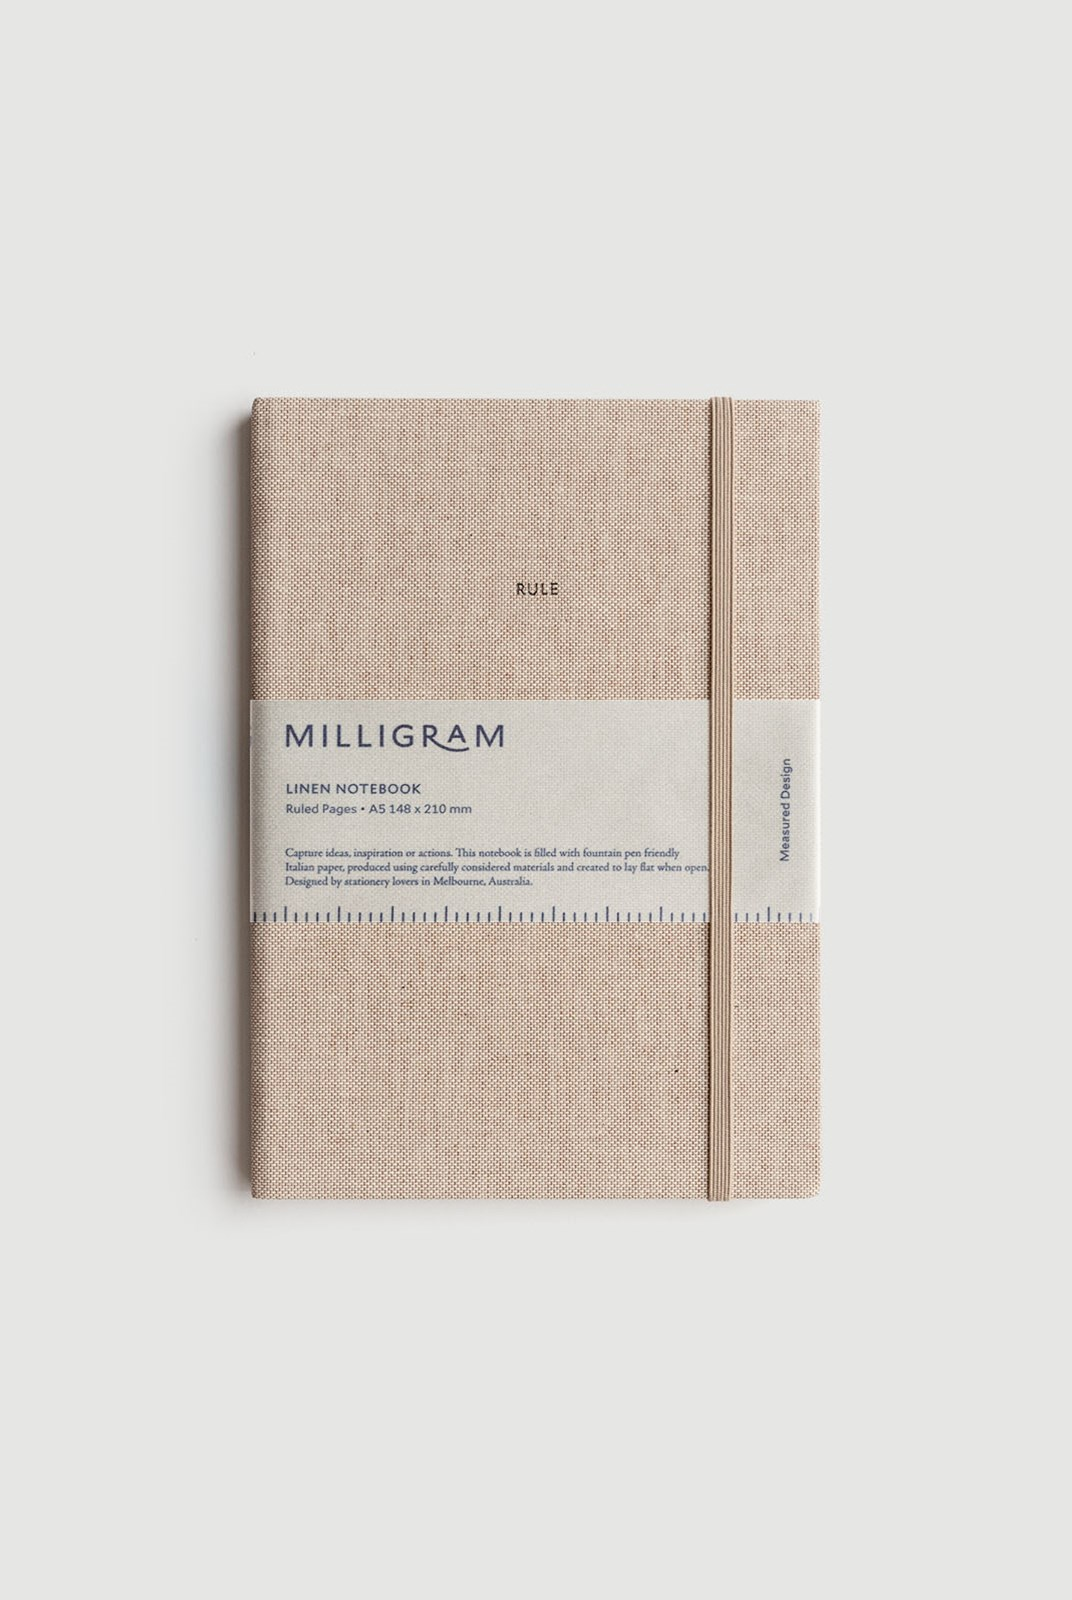 Milligram - Linen Notebook - Ruled - A5 - Beige